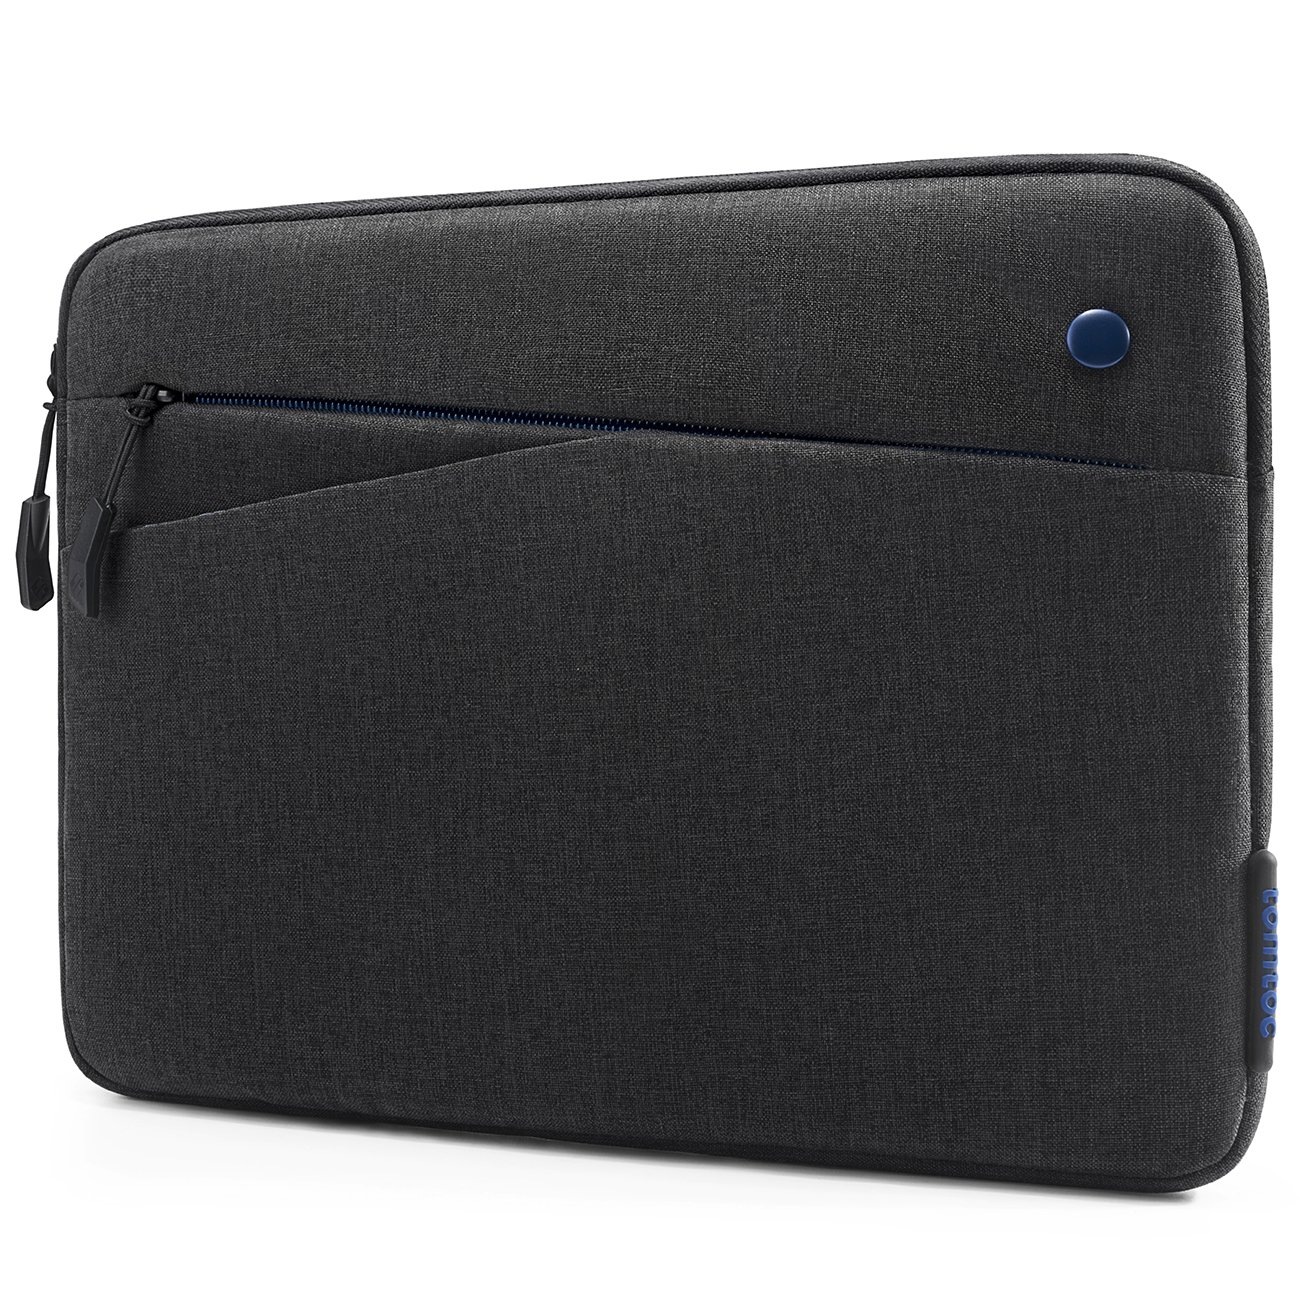 tomtoc 10.5 inch Tablet Sleeve Bag Compatible with iPad Pro, 9.7 inch New iPad, Surface Go, Samsung Galaxy Tab, Fit for Apple Pencil & Smart Keyboard